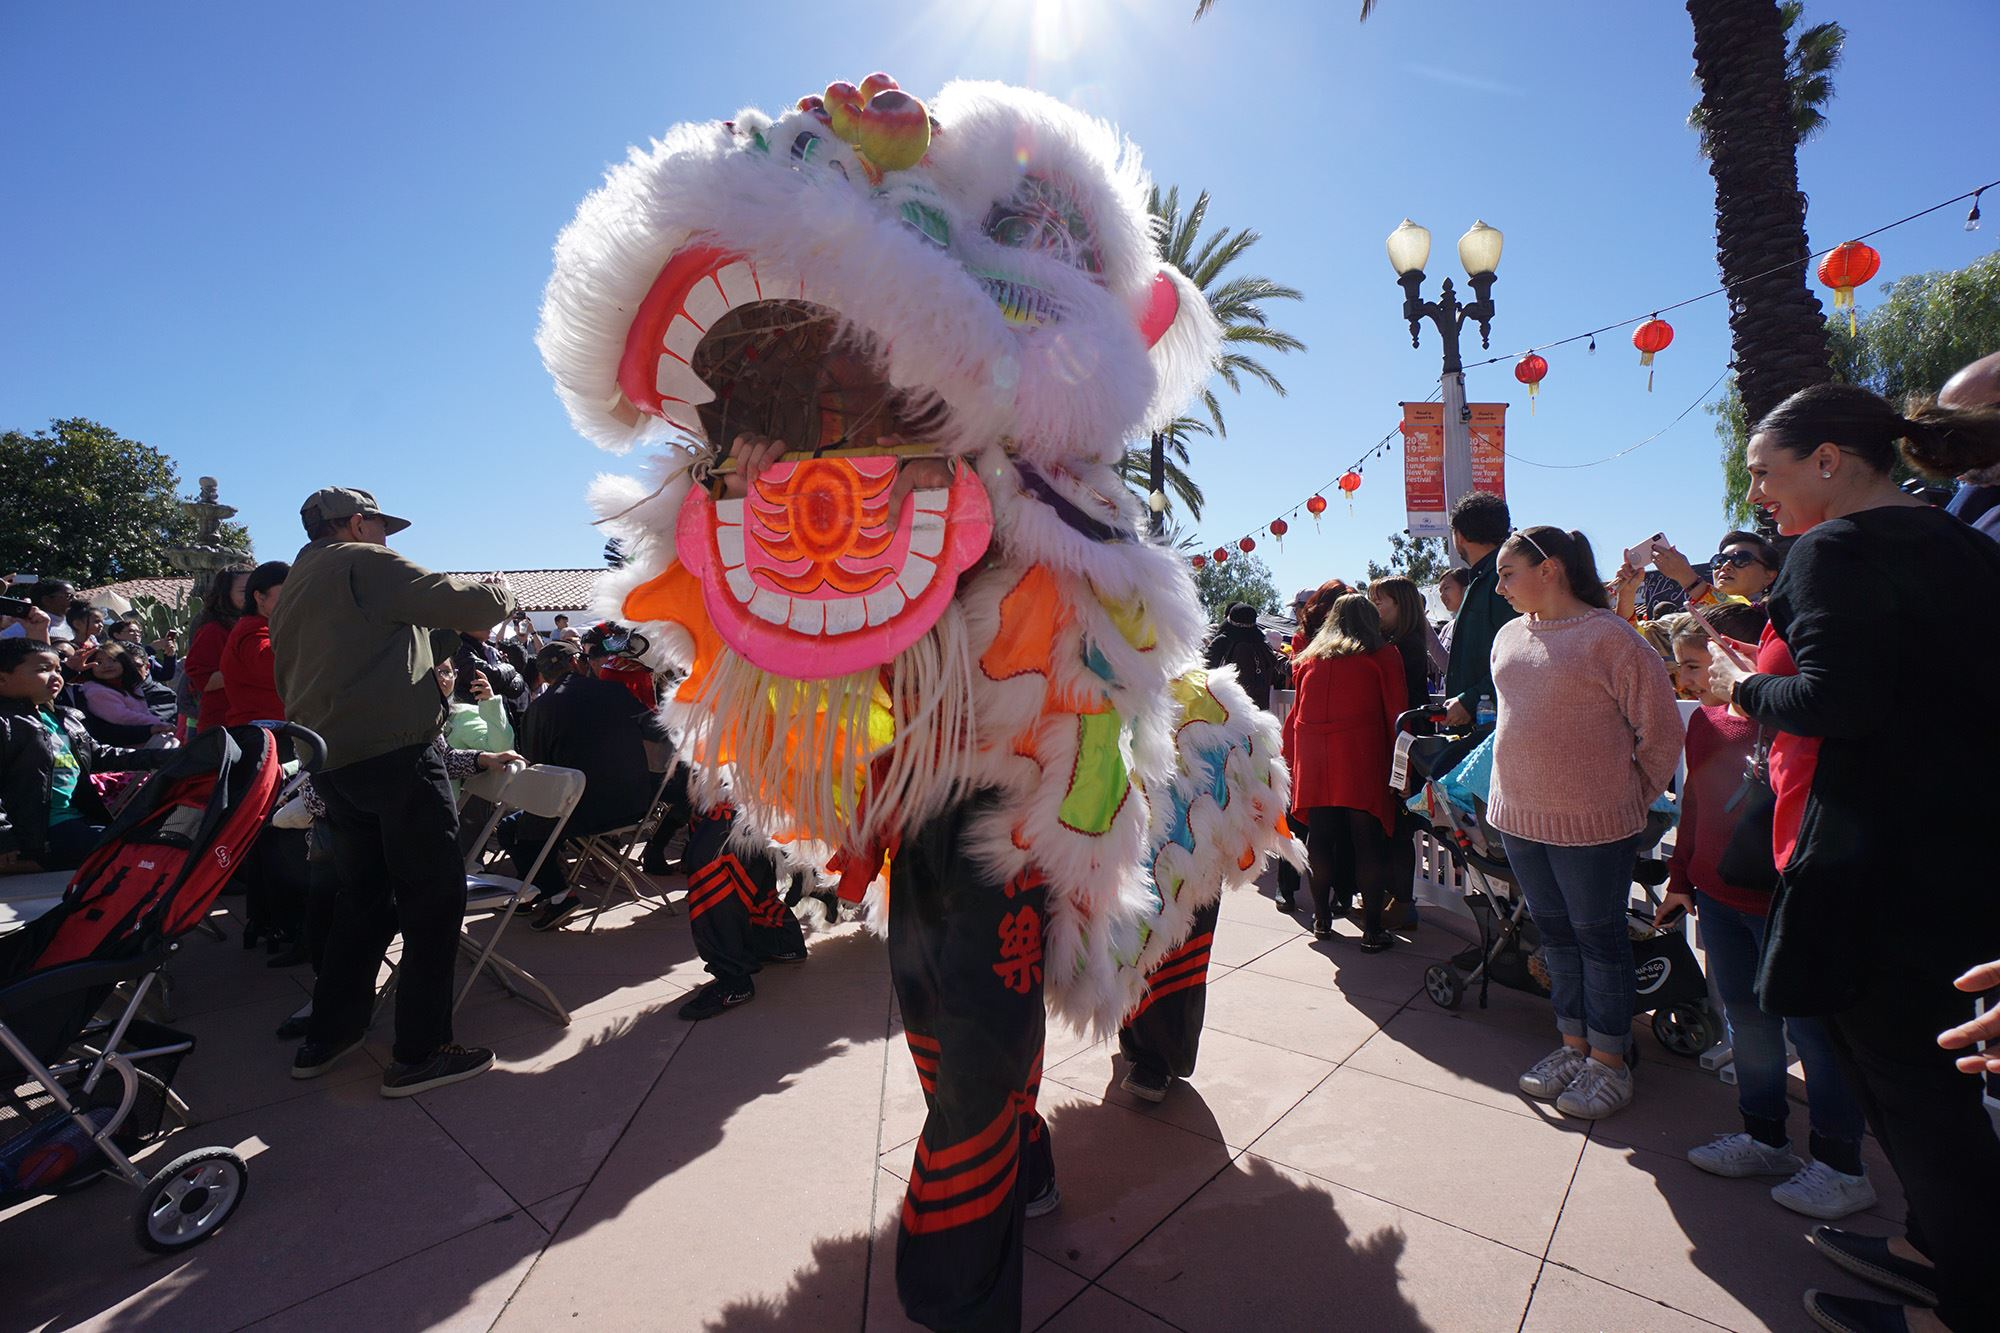 San Gabriel to host Lunar New Year Festival on February 8